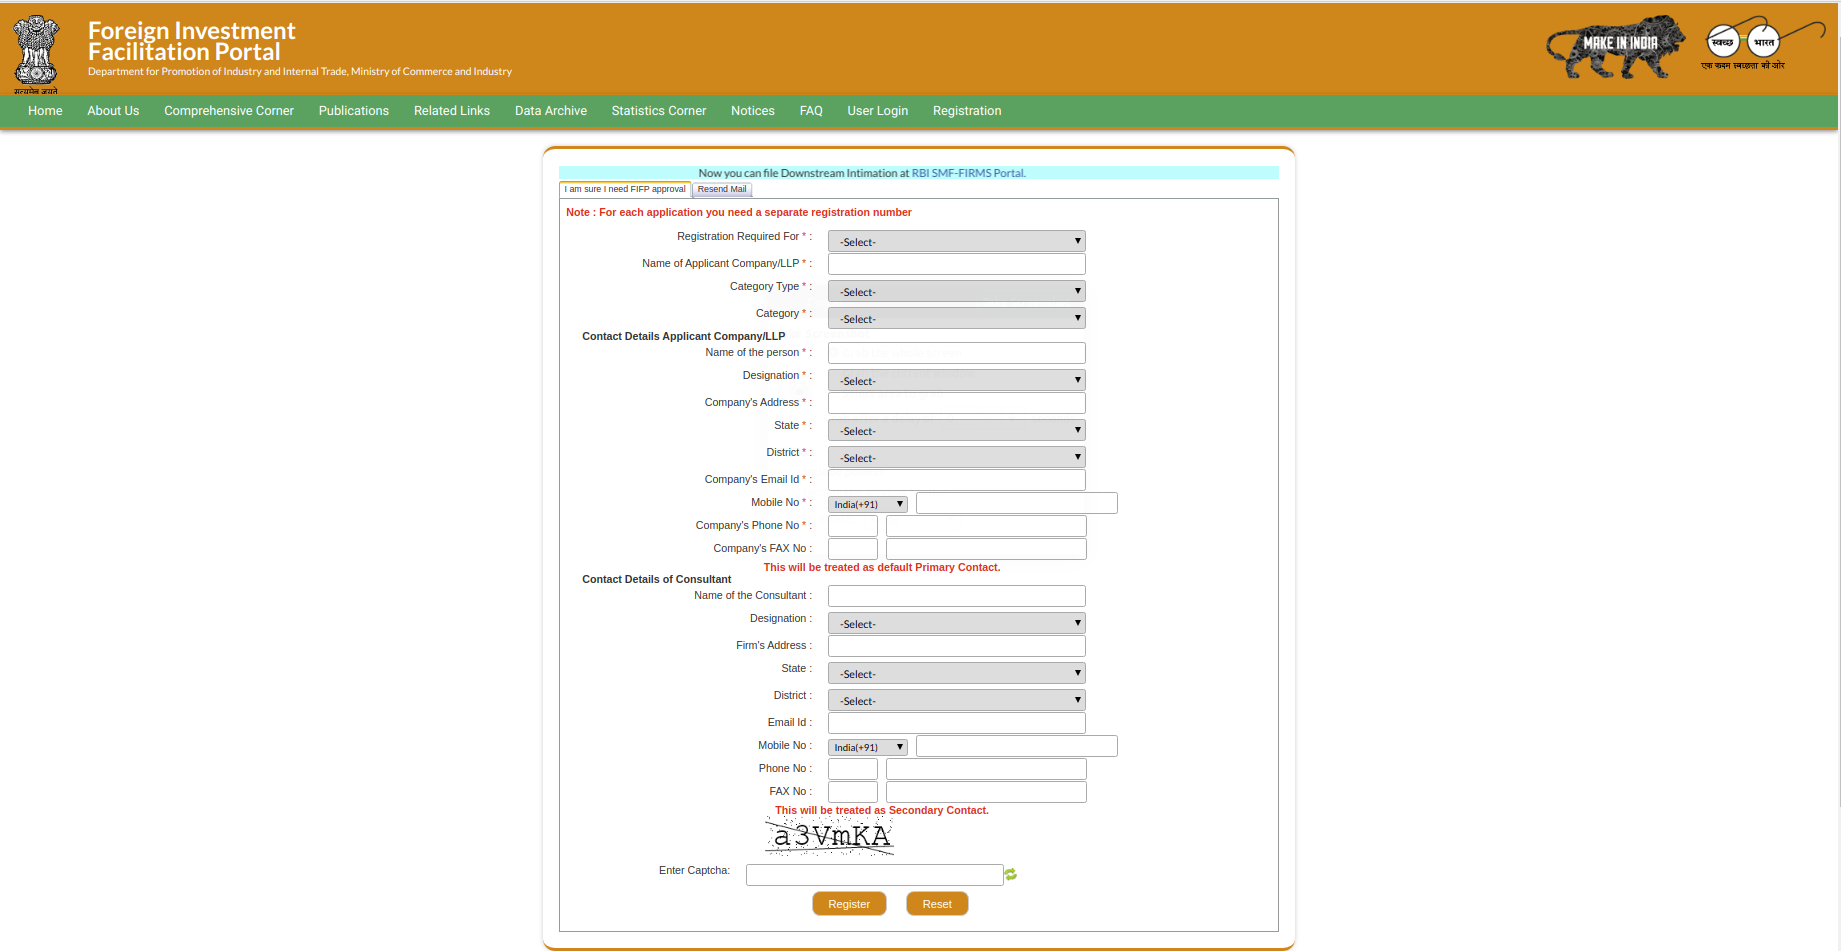 FIFP registration page